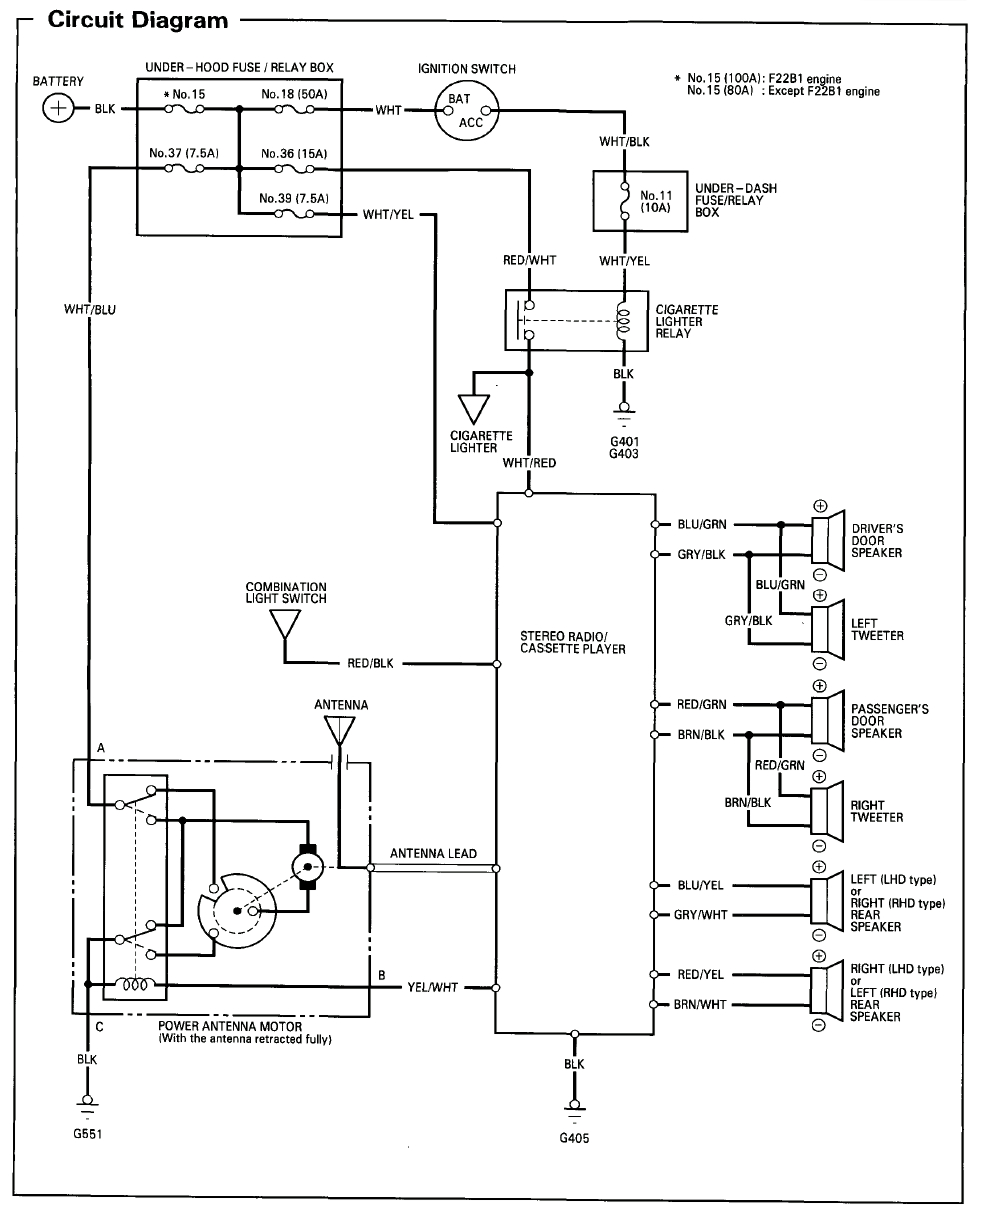 hight resolution of 2002 honda accord engine schematics wiring diagram database honda accord wiring diagram 2005 honda accord wire diagram